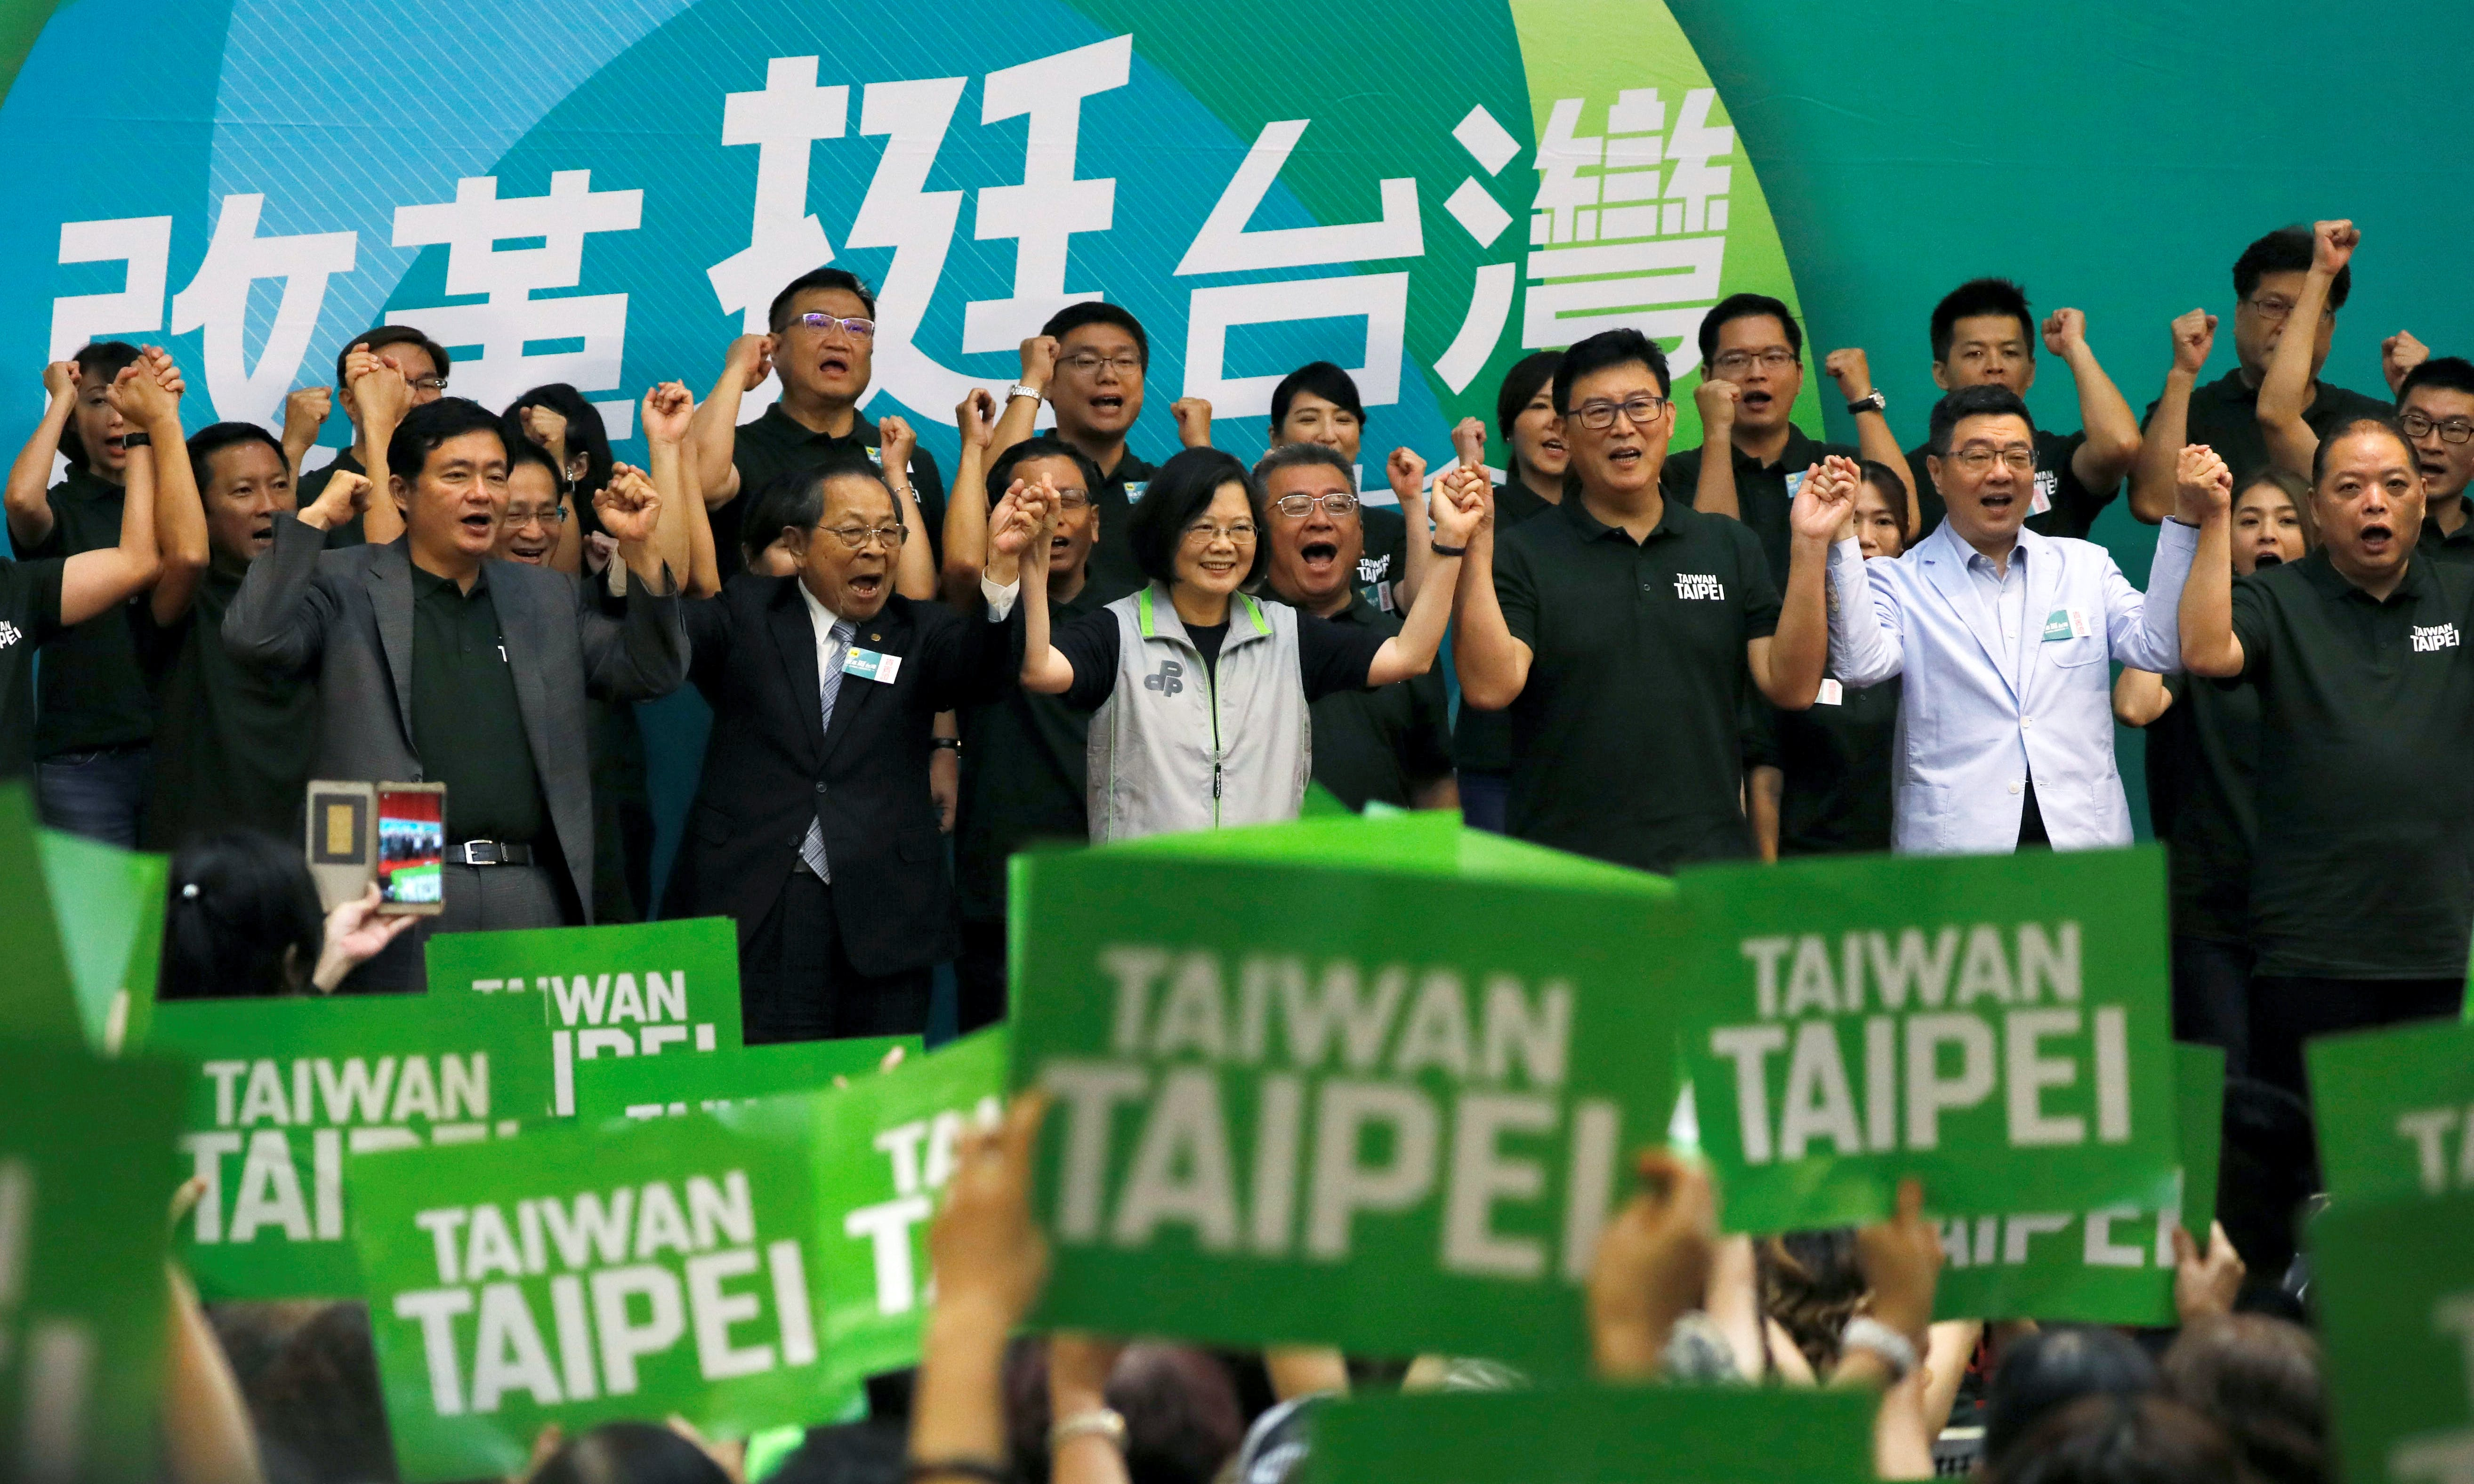 Has the DPP Unwittingly Opened the Door to Chinese Election Interference?